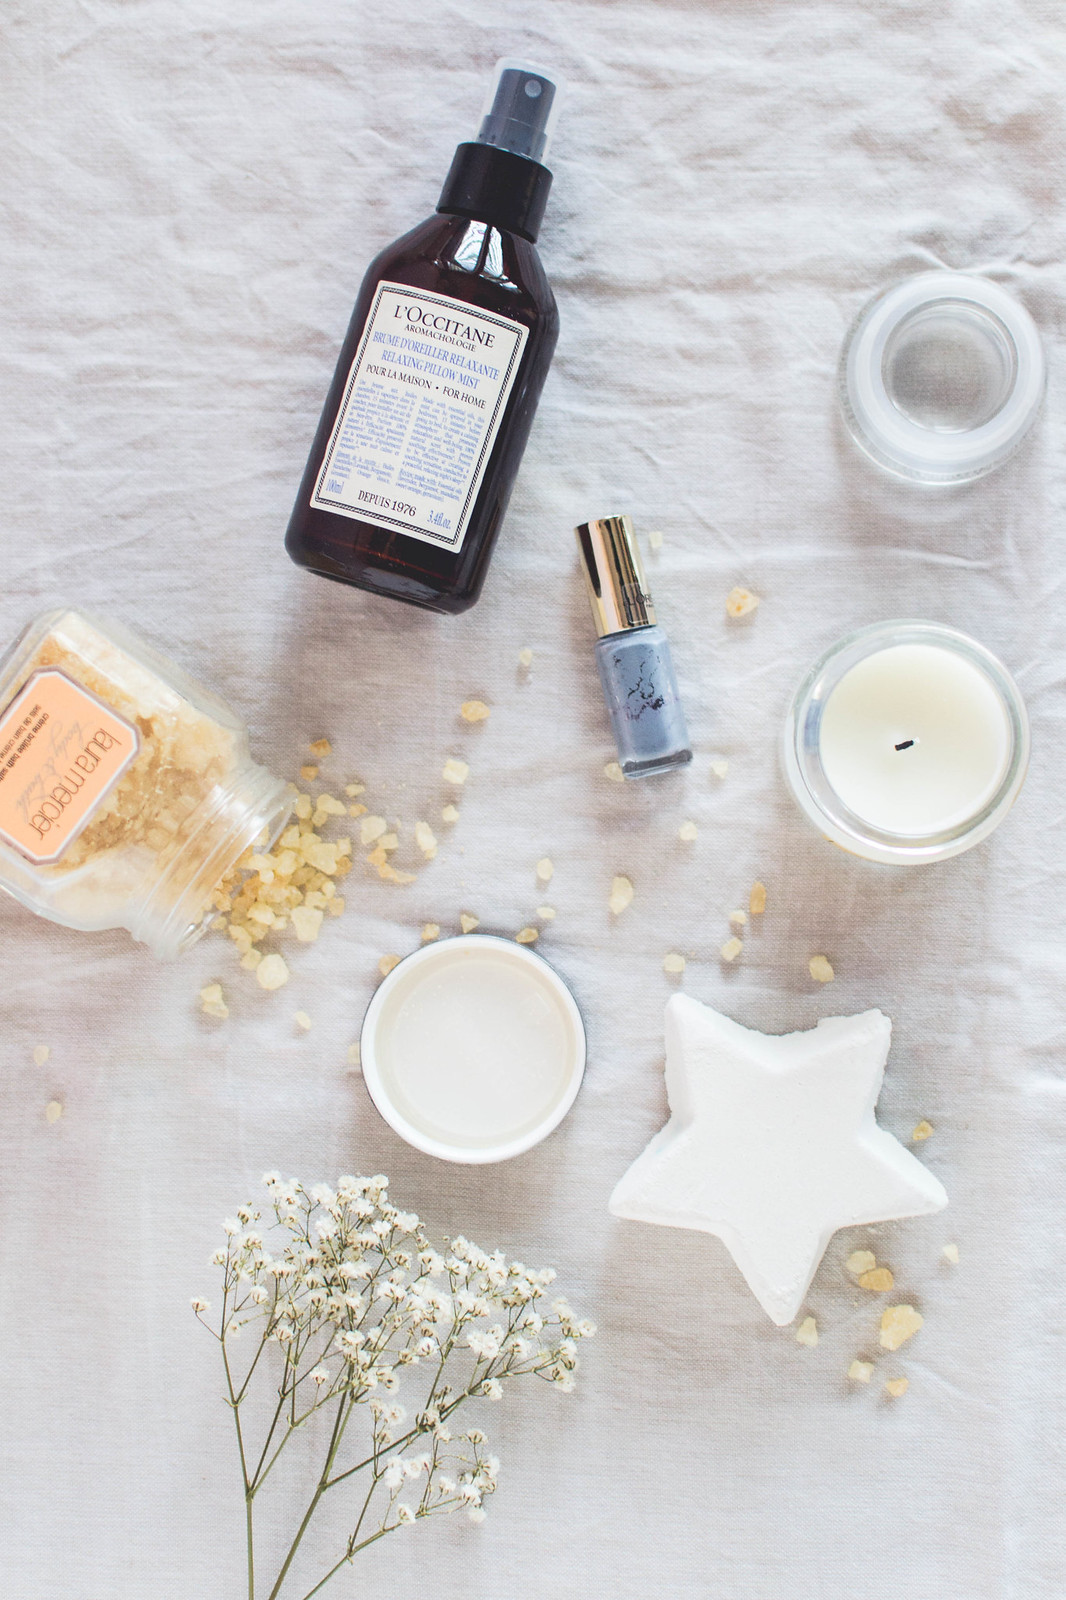 Recreate a DIY spa at home - Budget Friendly Pampering Guide